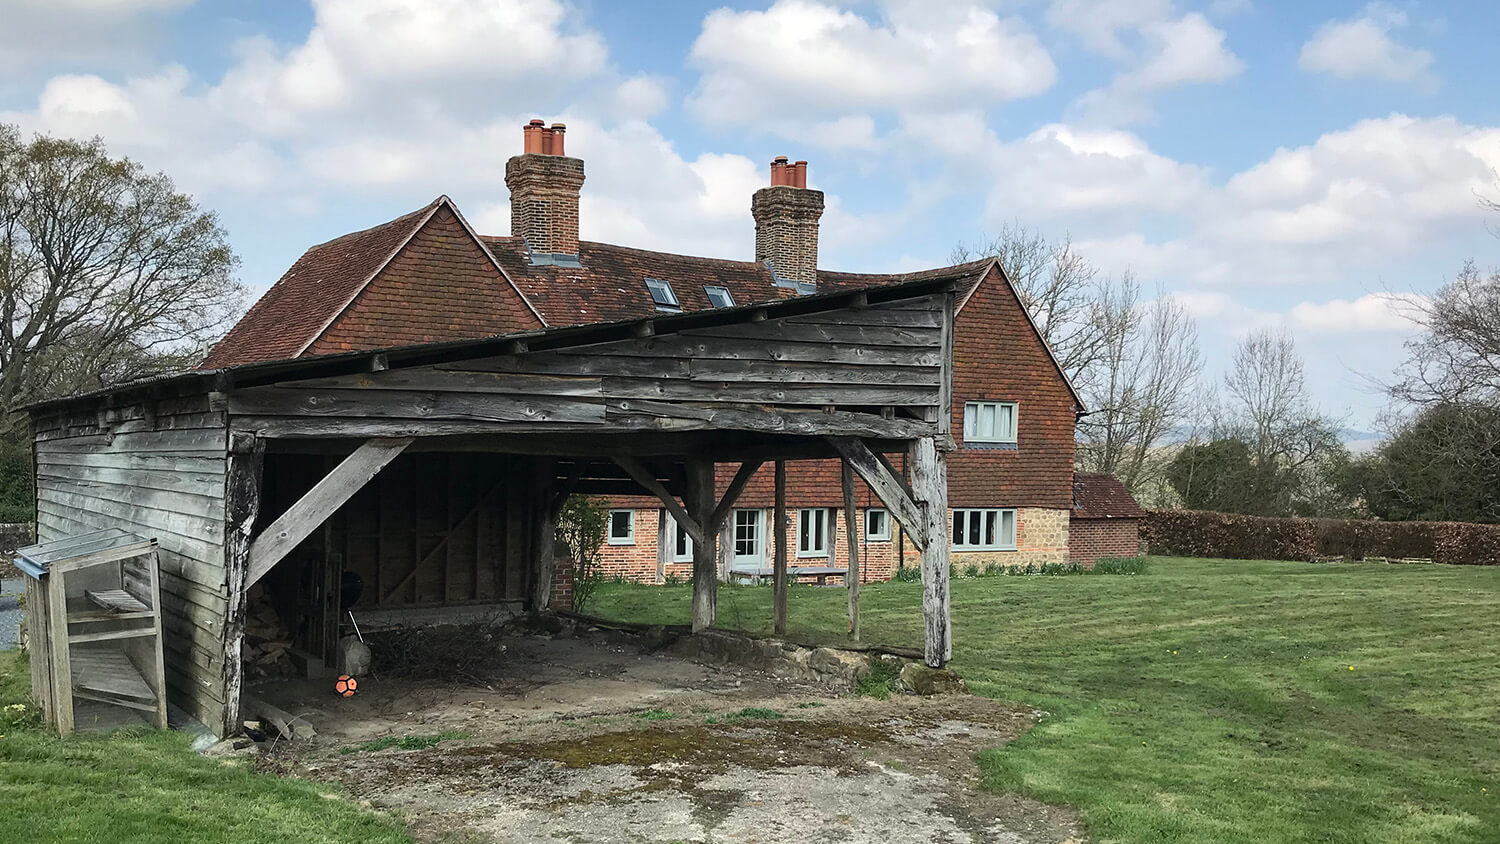 18th century barn refurbishment and repair